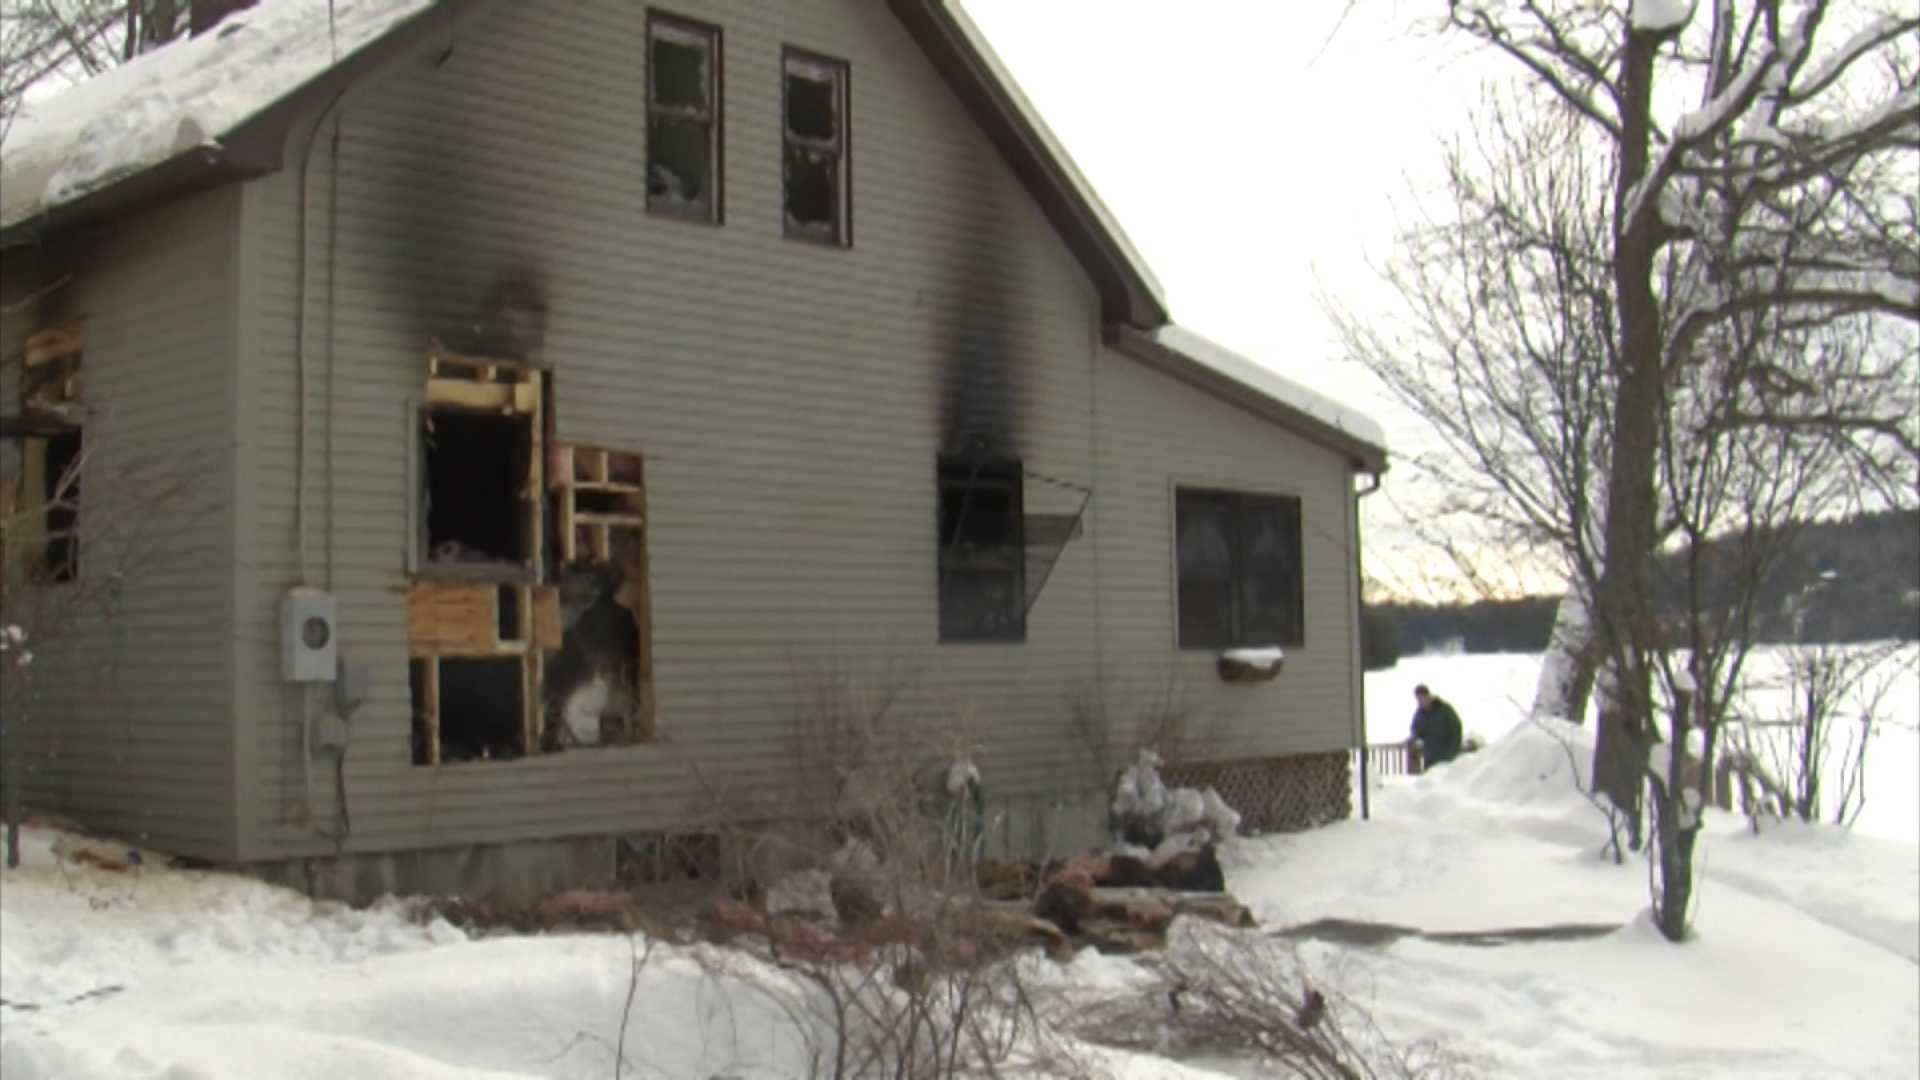 010313 Officials: Leicester fire not suspicious - img